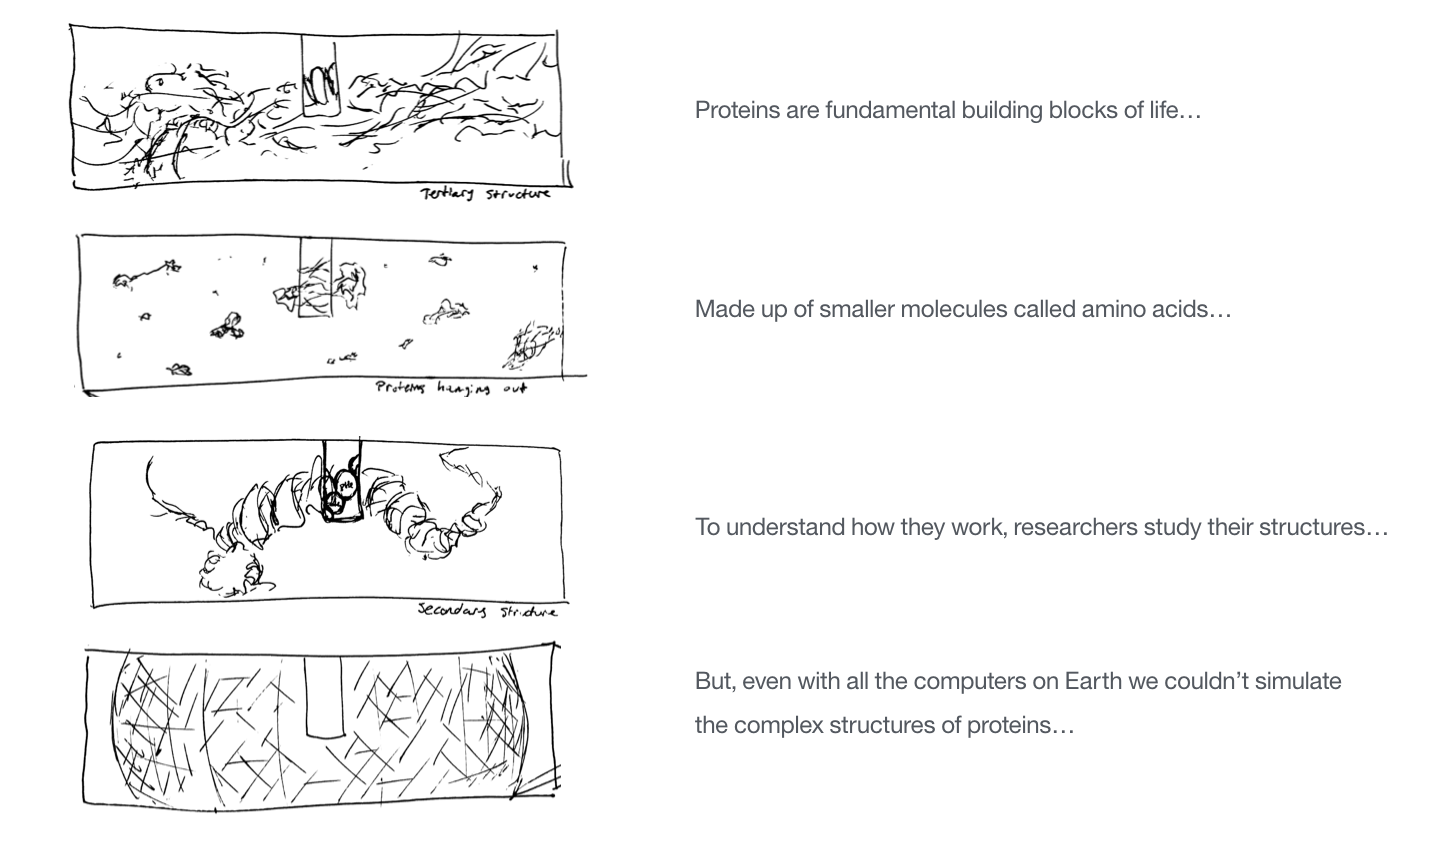 Initial hand-sketched storyboards with text markers for related content.